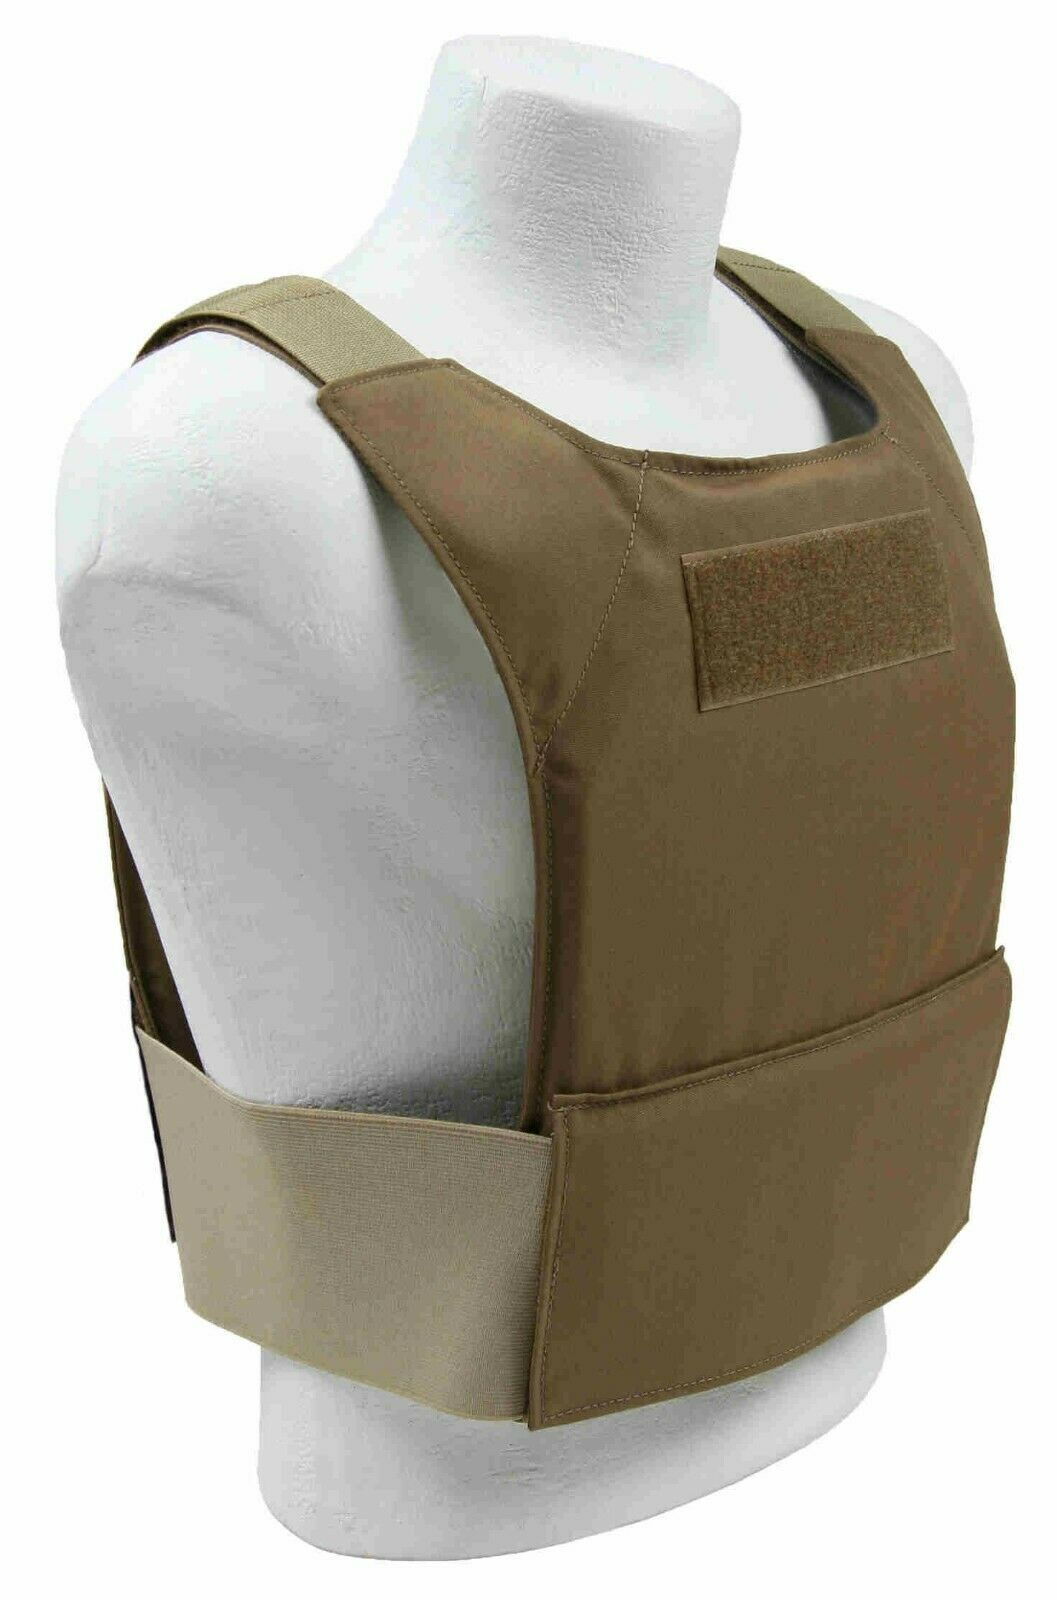 Beez Combat Systems ECP (Extreme  Concealable Plate Carrier) 10x12  good price